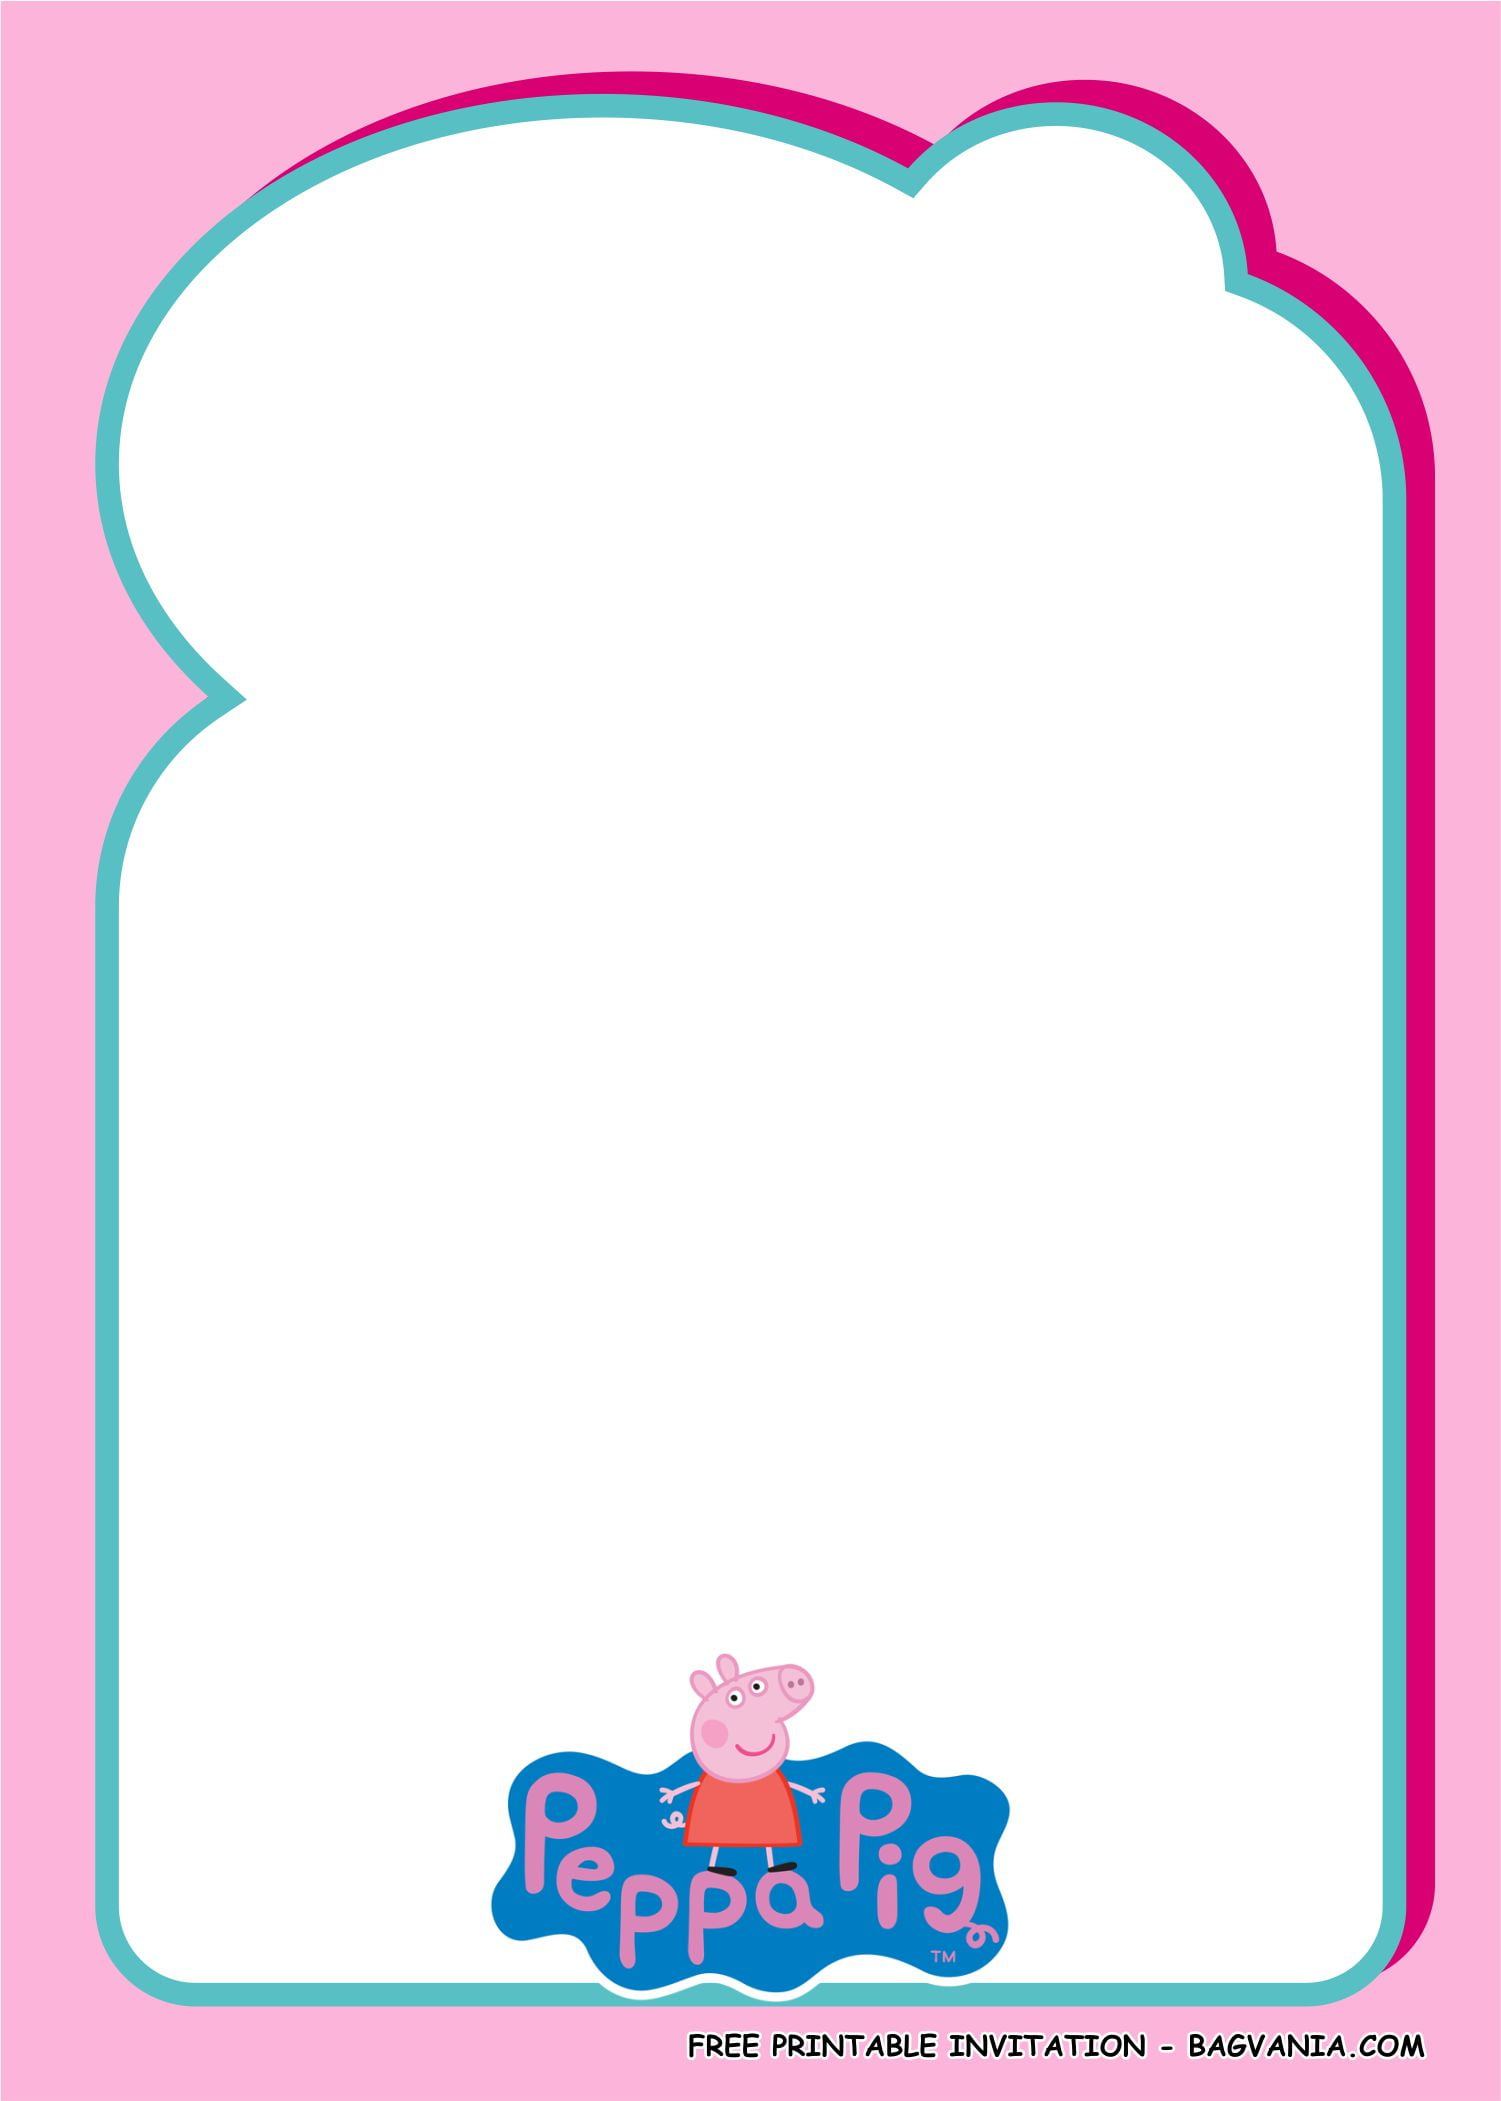 peppa pig invitation templates 1 free